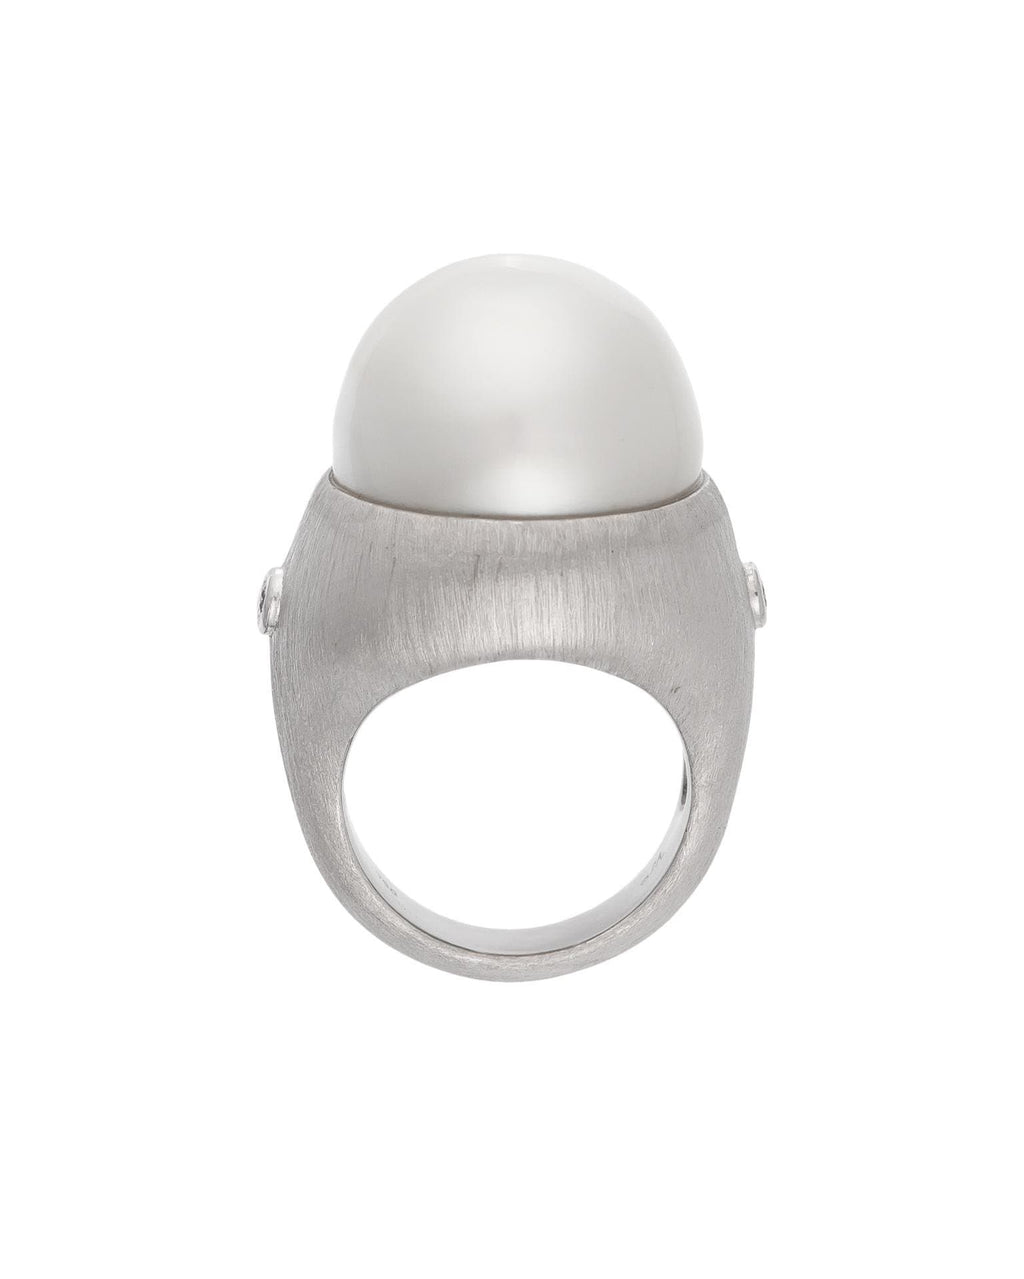 No. 128 - White Gold South Sea Pearl & Diamond Ring